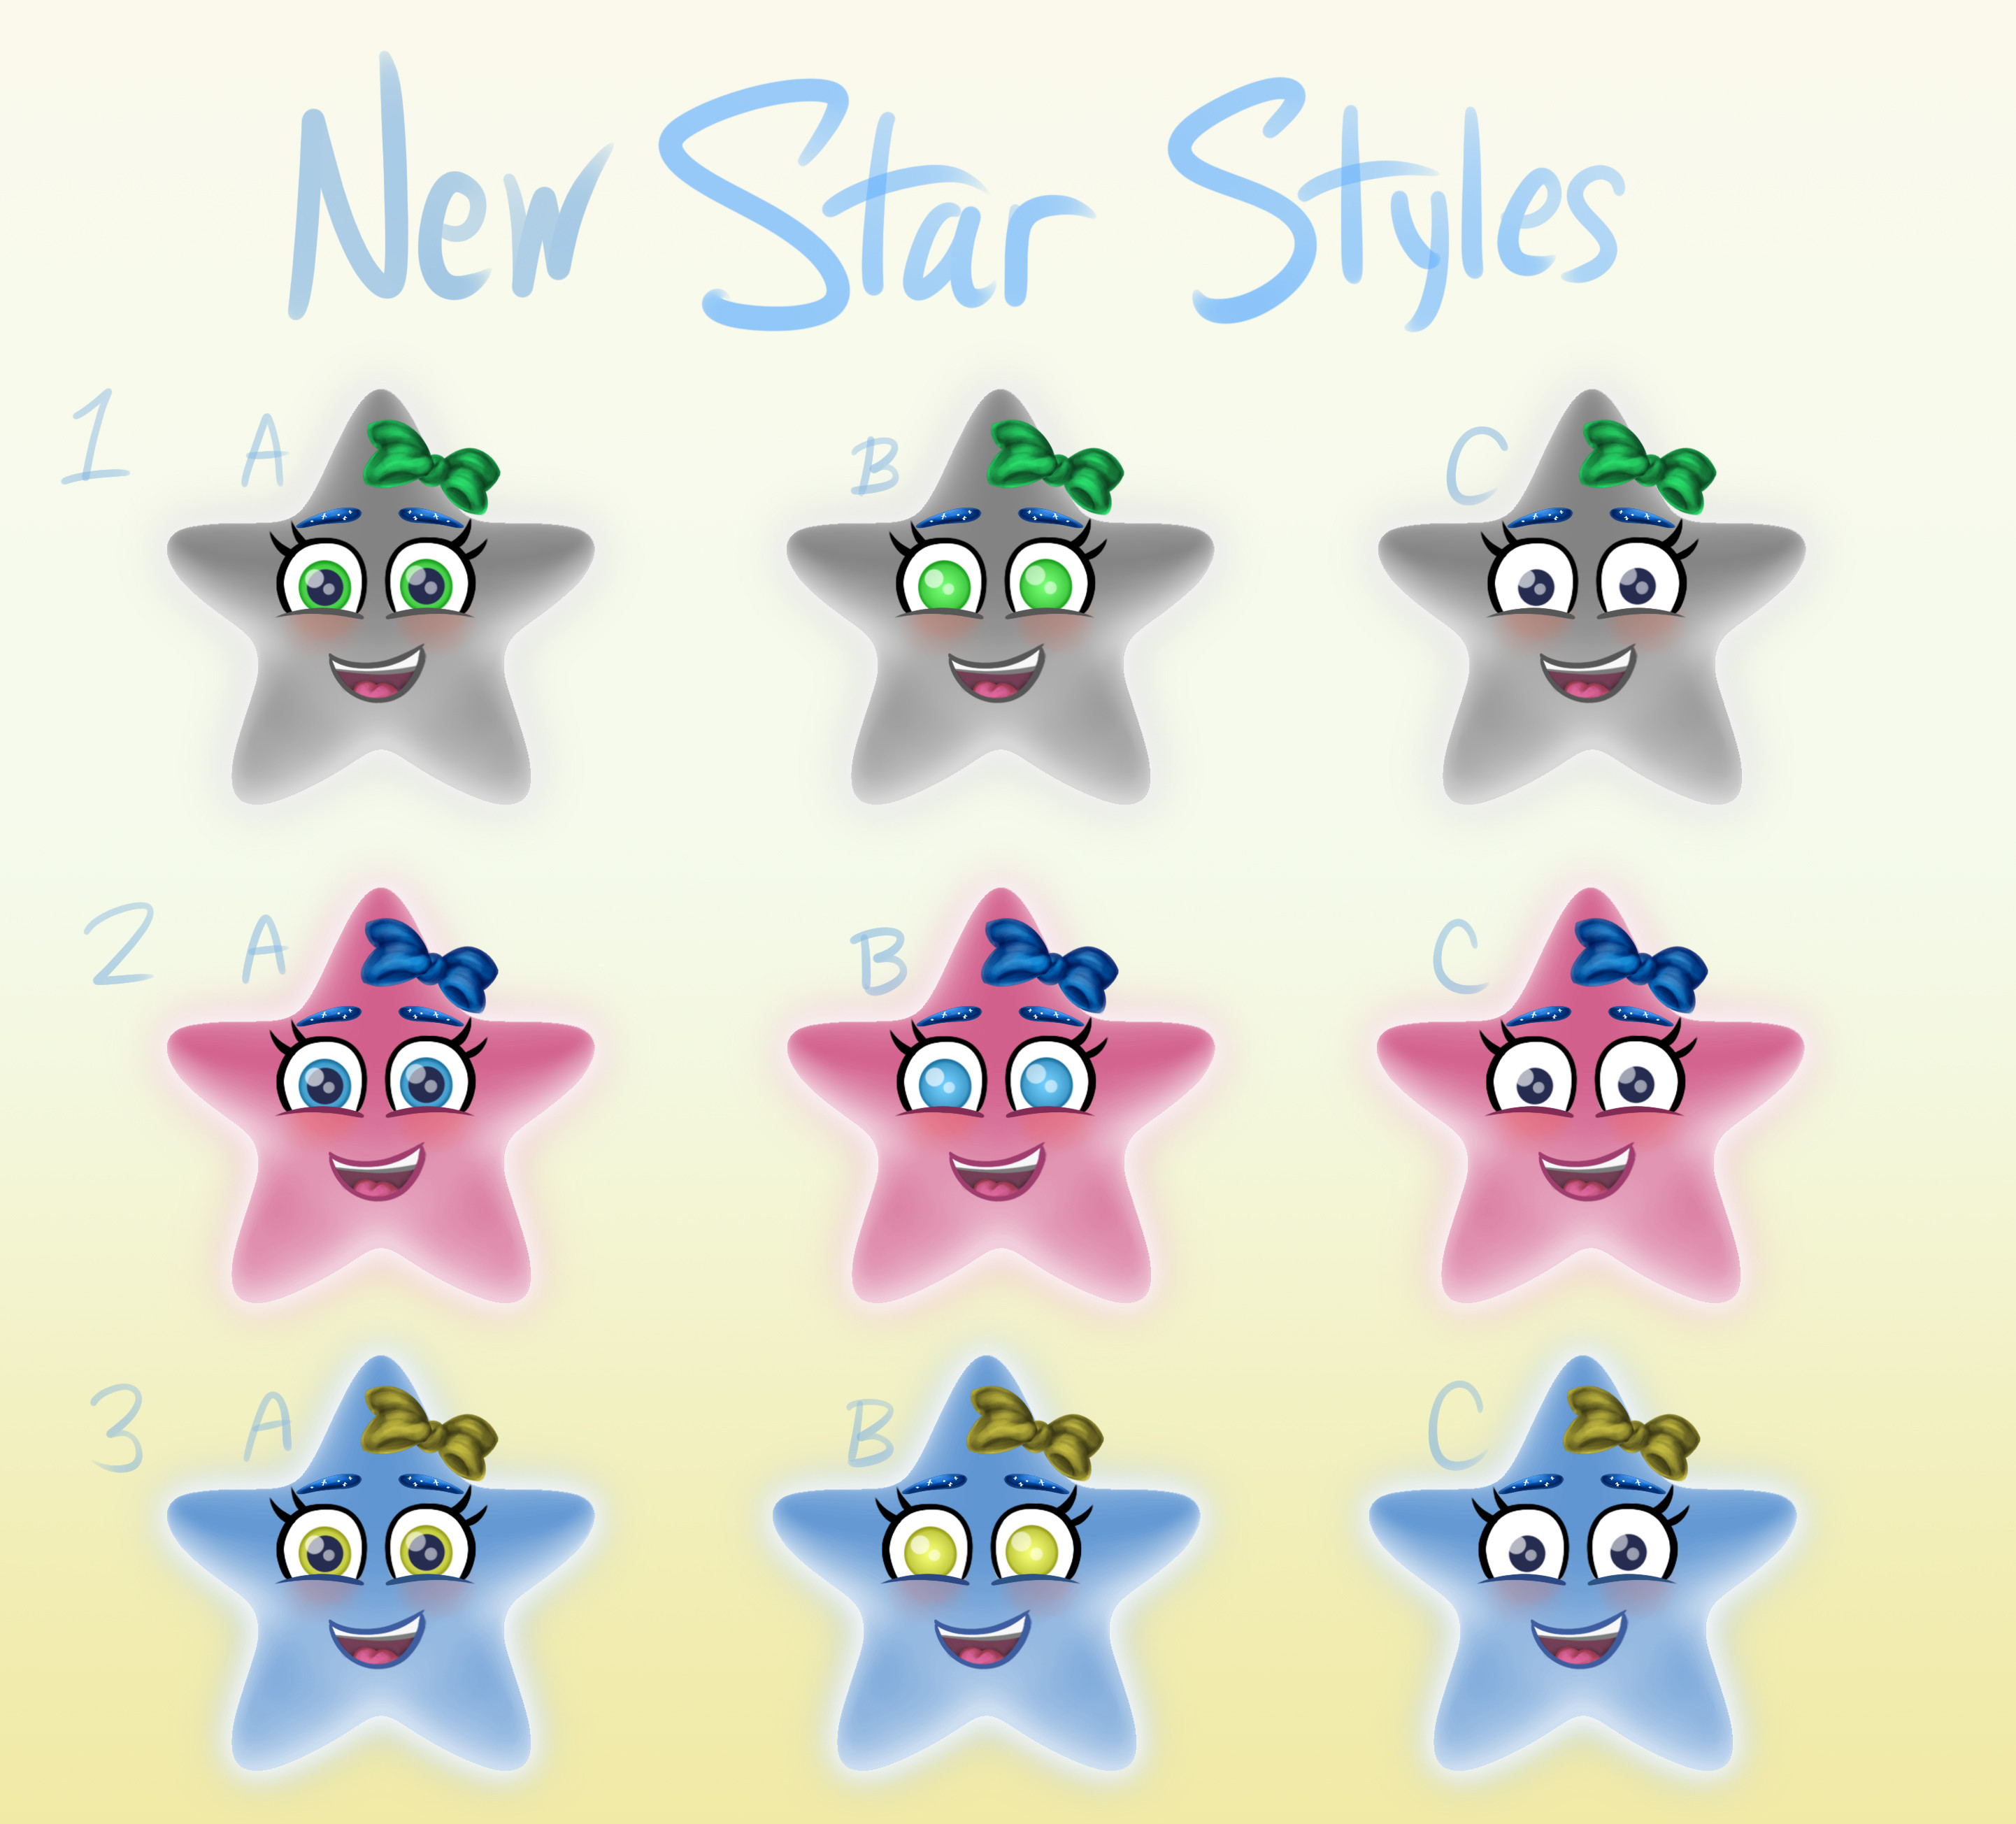 Early concepts for New Star